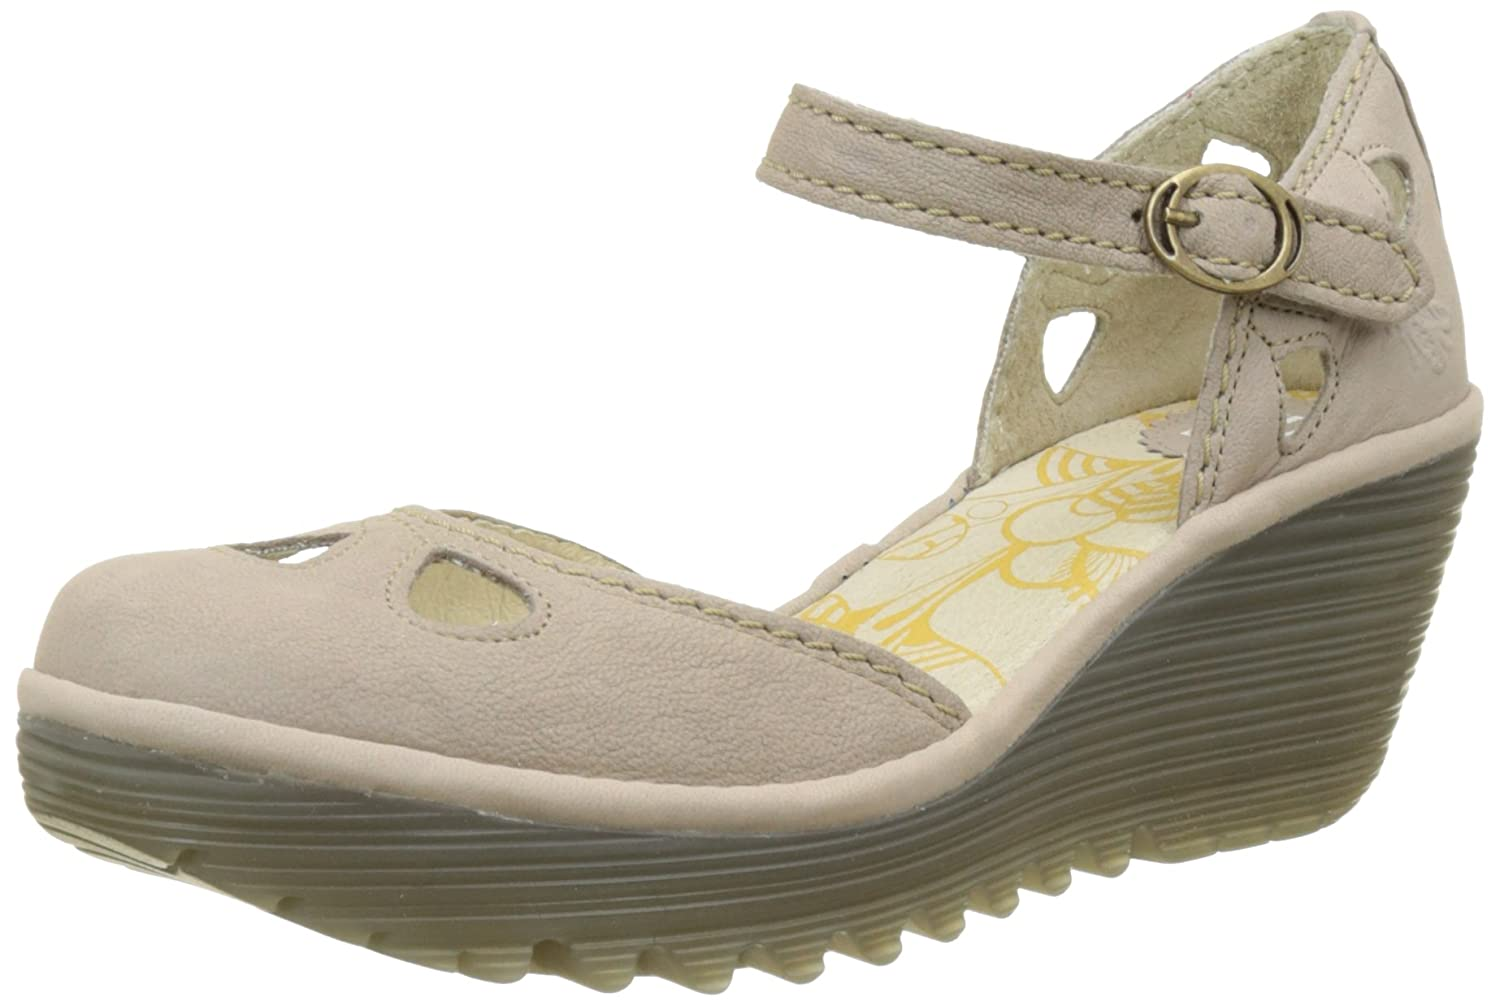 84a72157bf69d Amazon.com   Fly London Yuna Mary Jane Wedge Sandal Full Leather    Platforms & Wedges